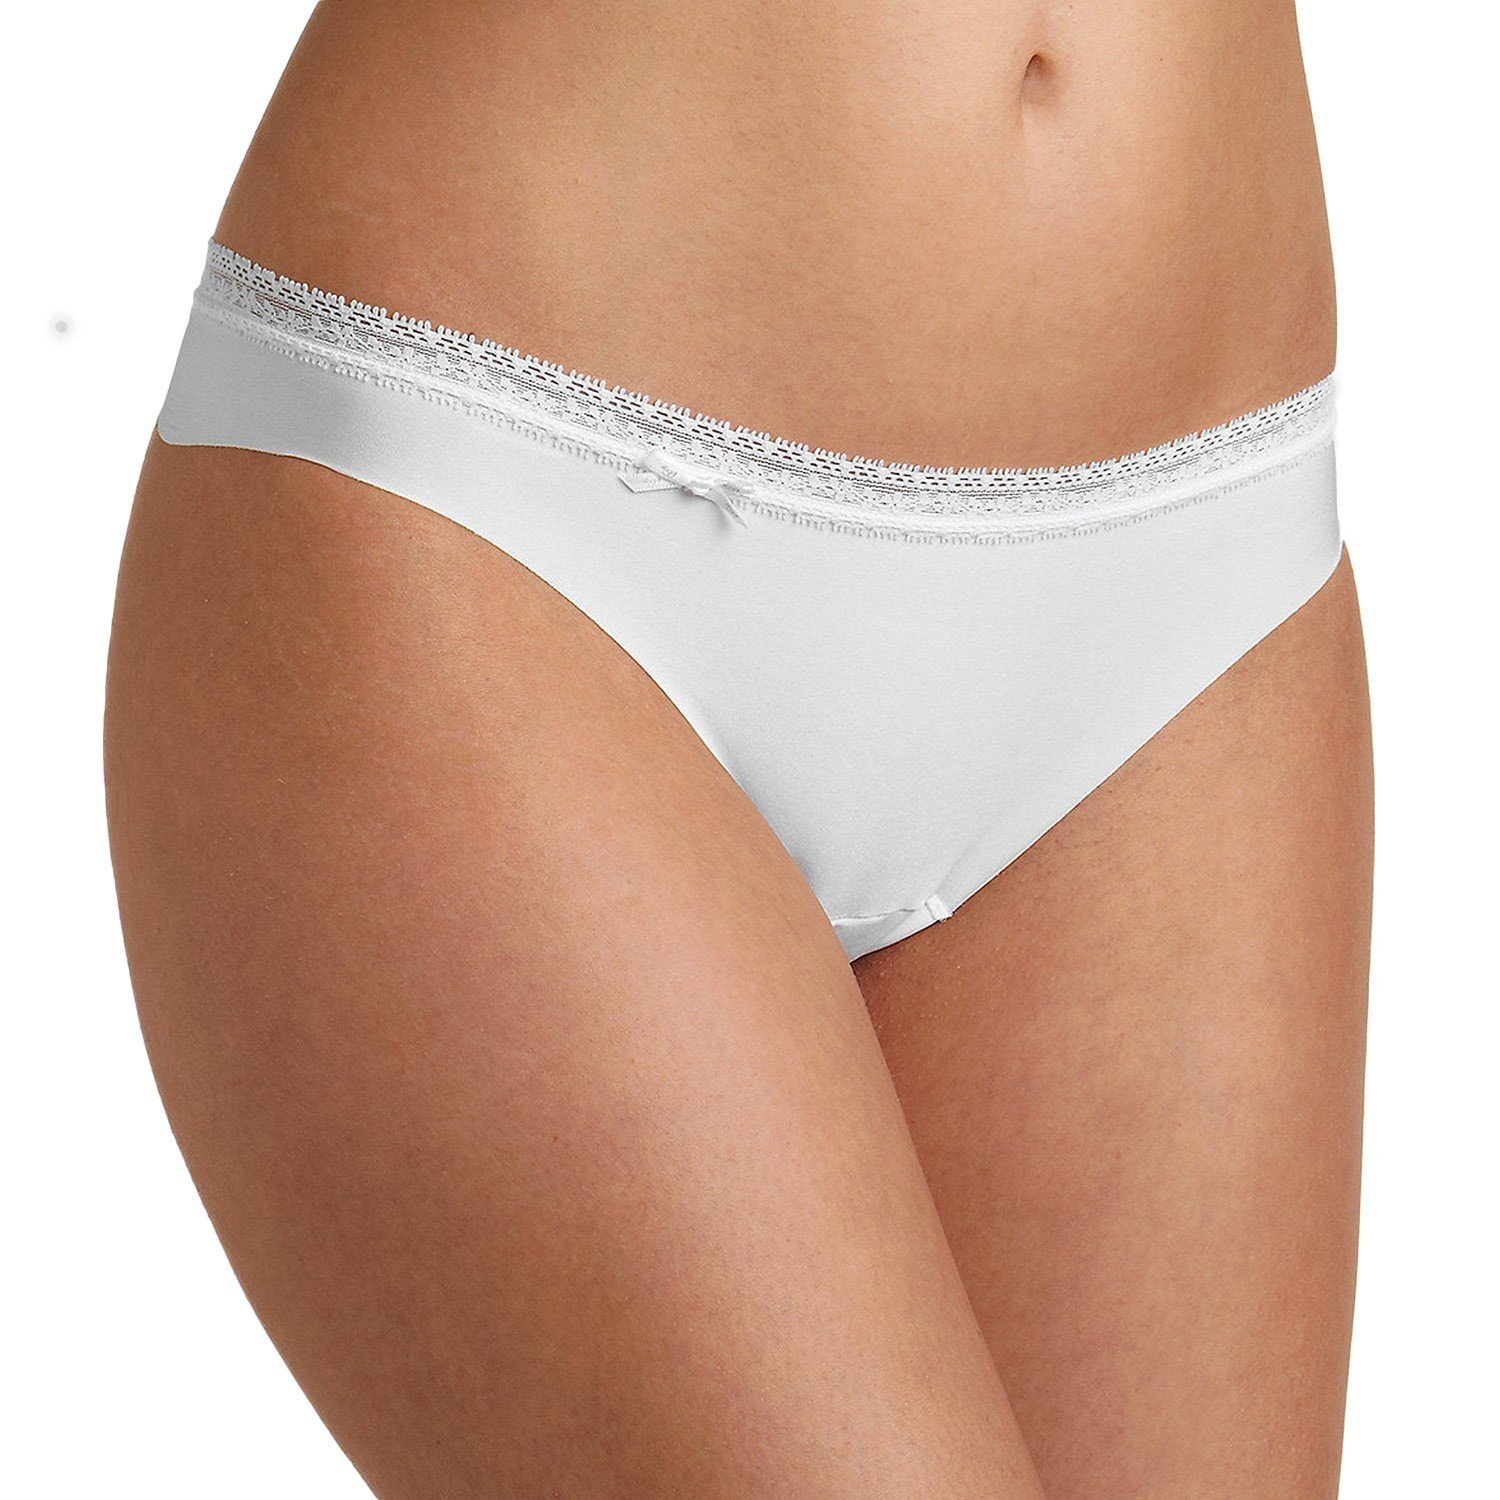 2-Pack Sloggi Invisible Light Lace String - Thong - Briefs ... 52f0b252b